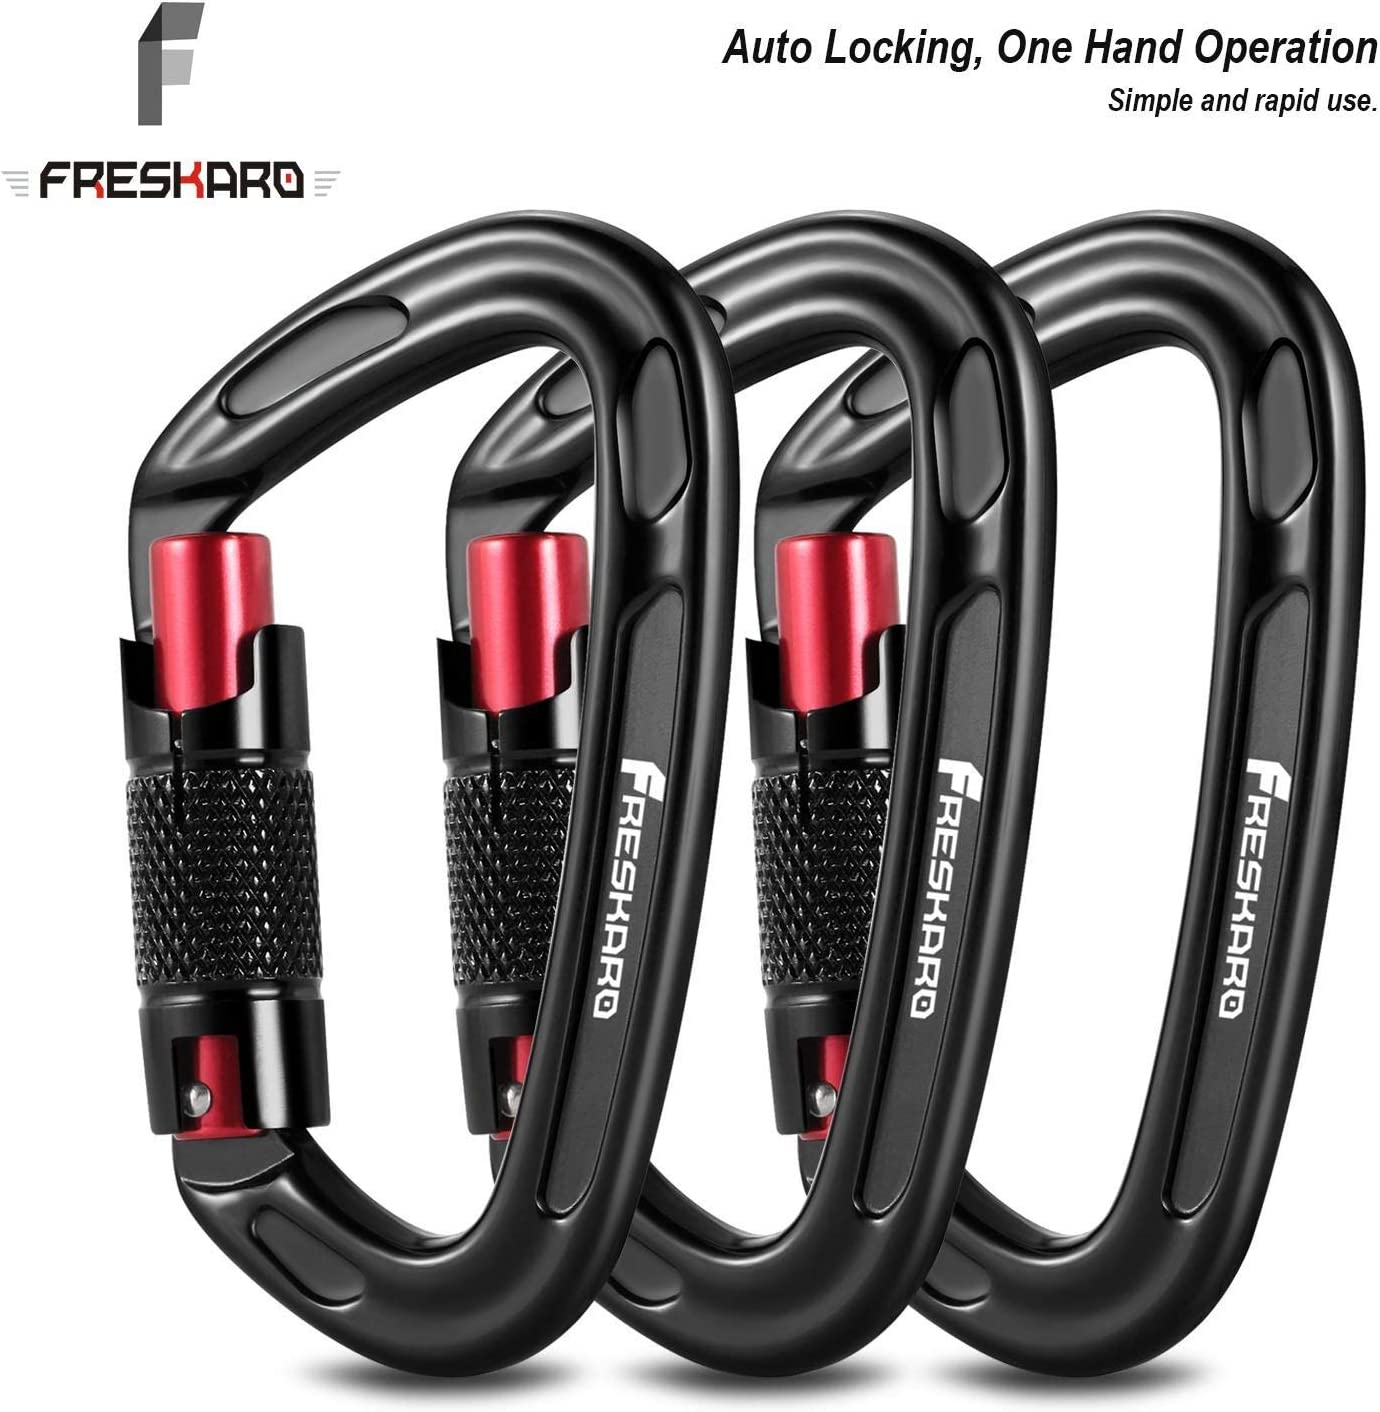 FresKaro 2020 UIAA Certified 25KN Auto Locking Climbing Carabiner Clips,Twist Lock and Heavy Duty Carabiners for Rock Climbing, Rappelling and Locking Dogs, D Shaped 3.93 Inch, Large Size, Black